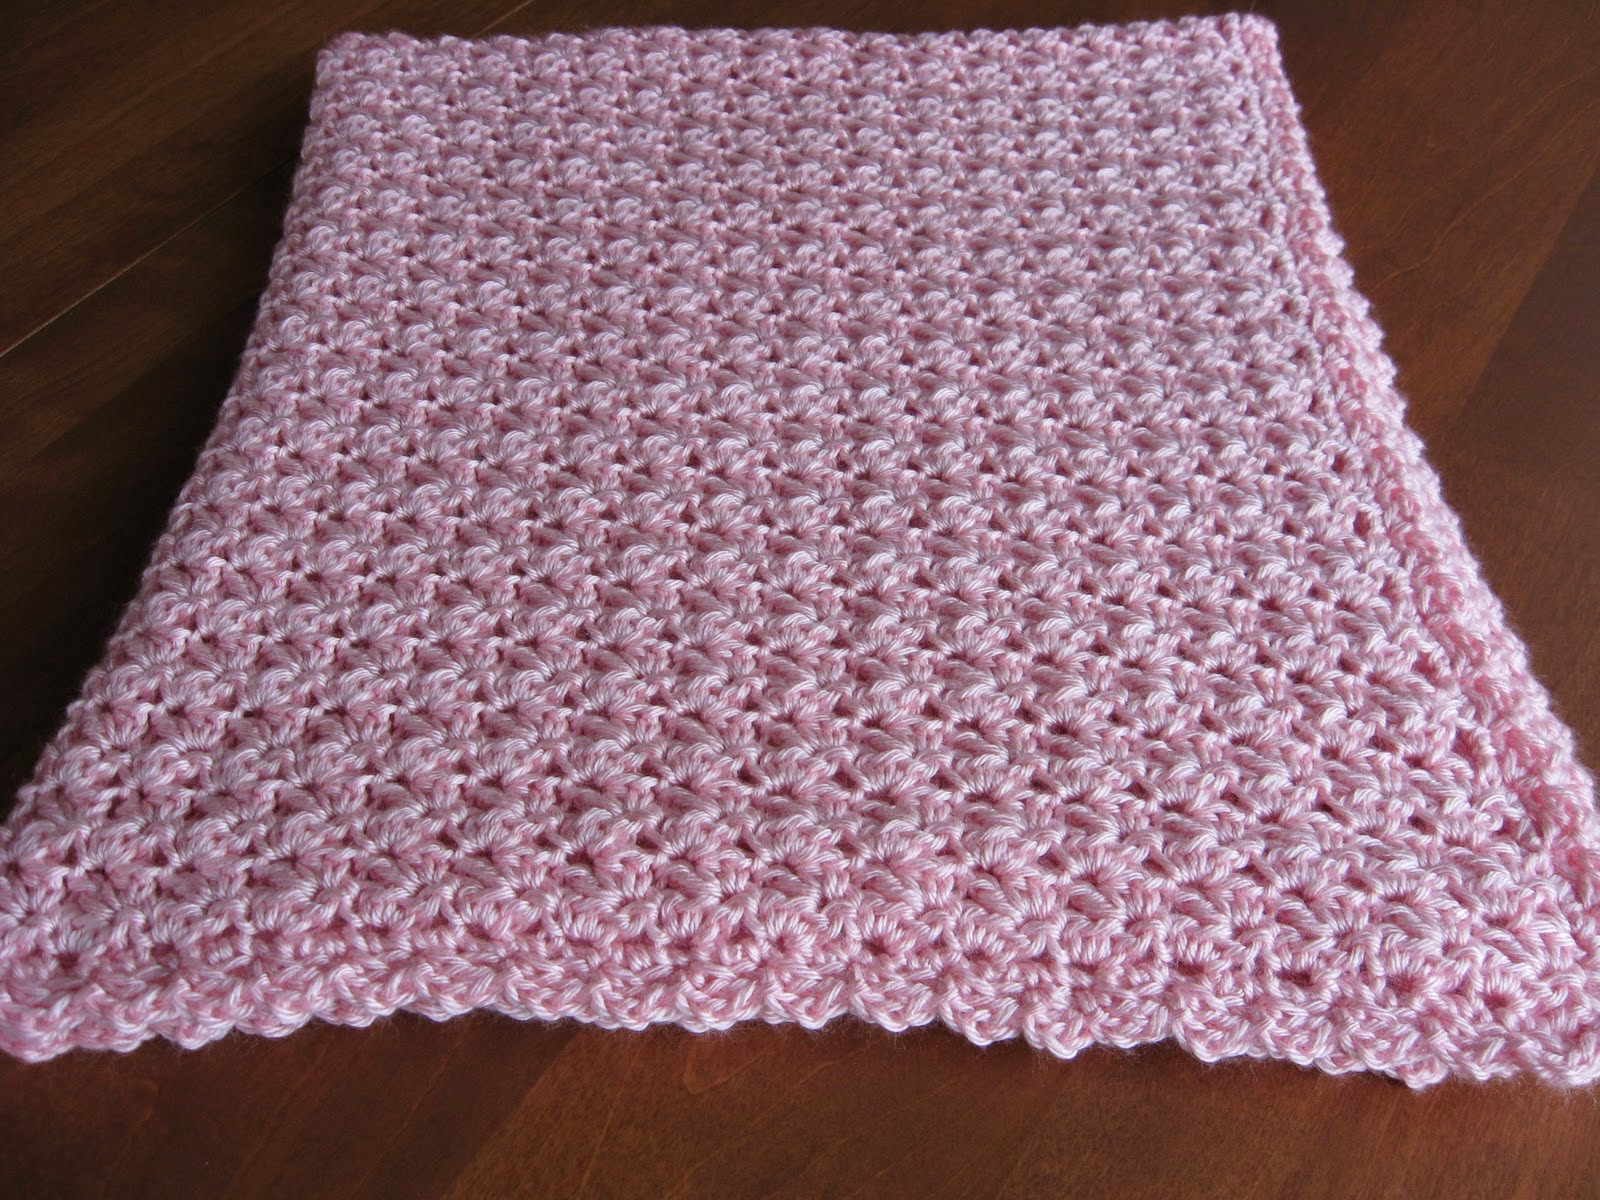 Quick and easy crochet baby afghan pattern dancox for best free crochet blanket patterns for beginners on pinterest bankloansurffo Images